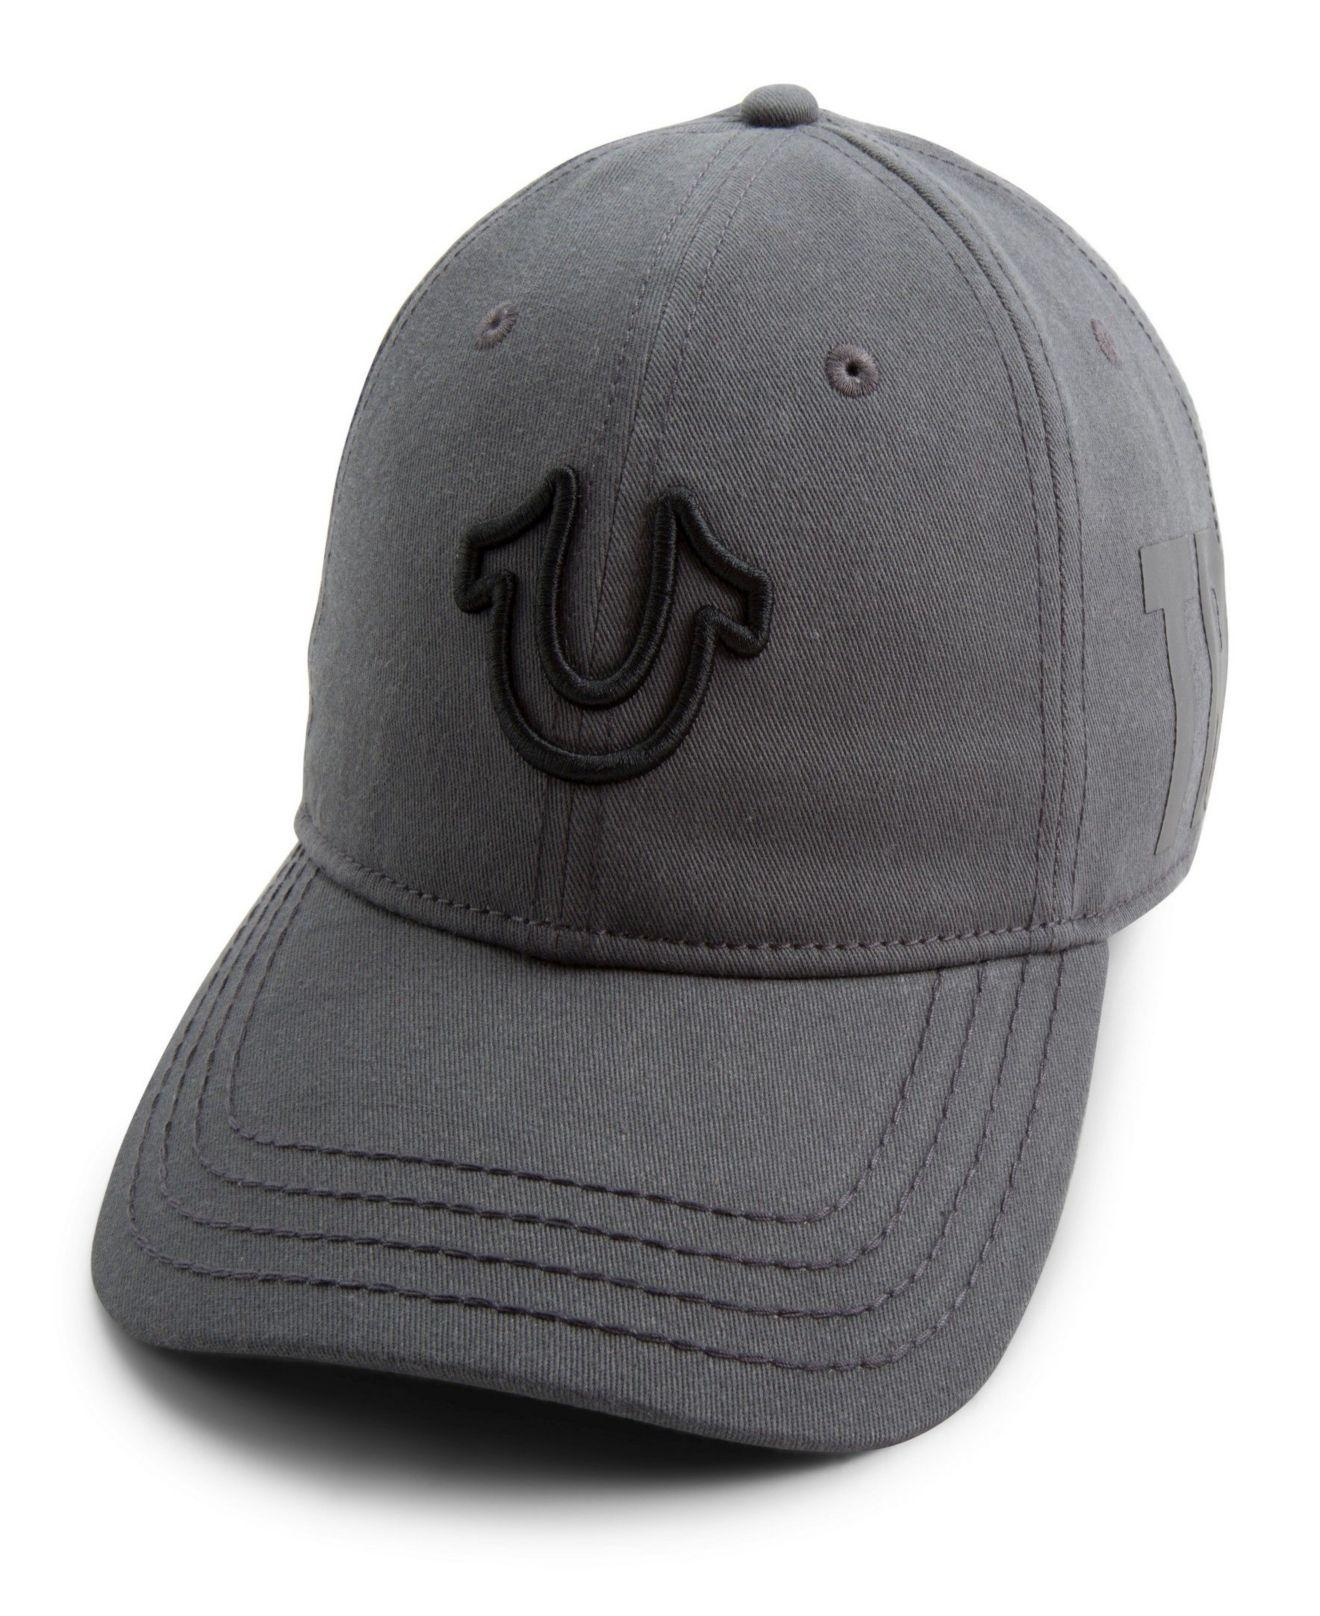 415489a2 Lyst - True Religion 3d Embroidered Horseshoe Cap in Gray